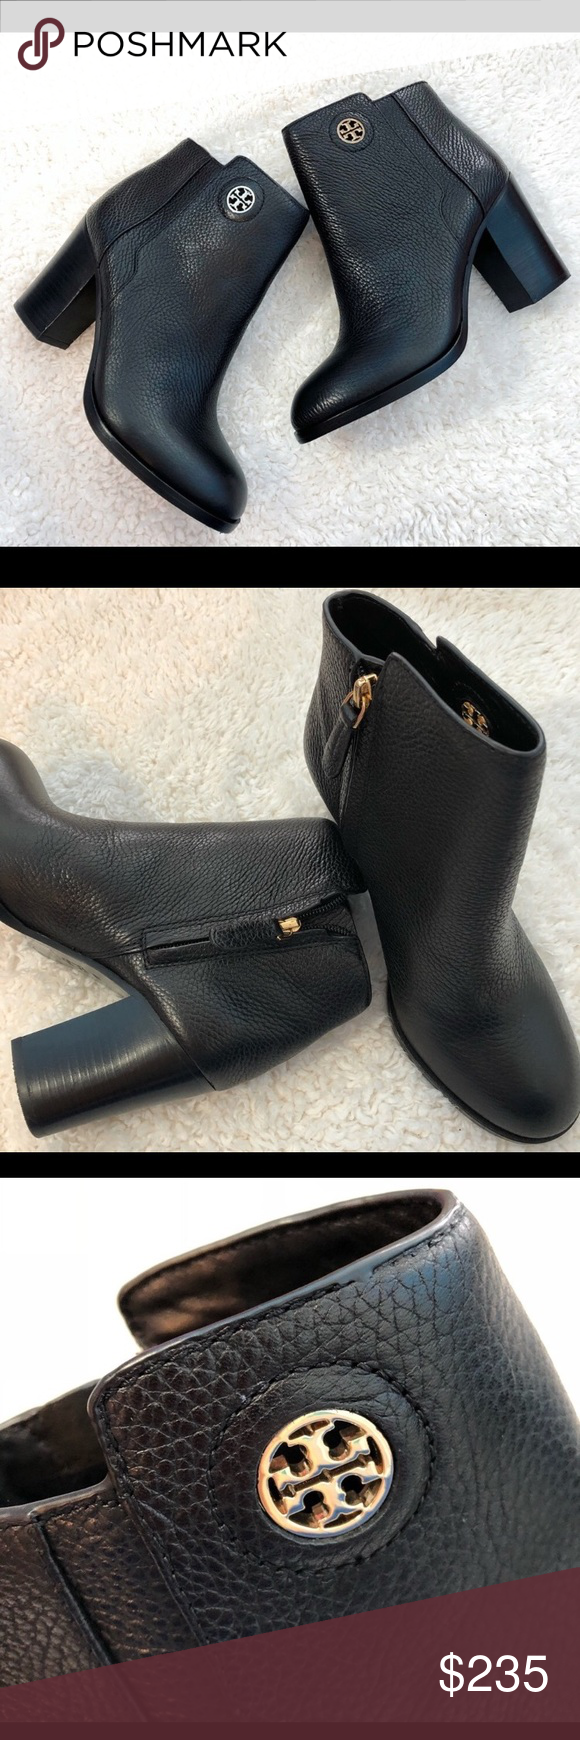 1361d01241dc Tory Burch Junction Bootie - Black Pebbled Leather Tory Burch Junction  bootie in Black Pebbled leather